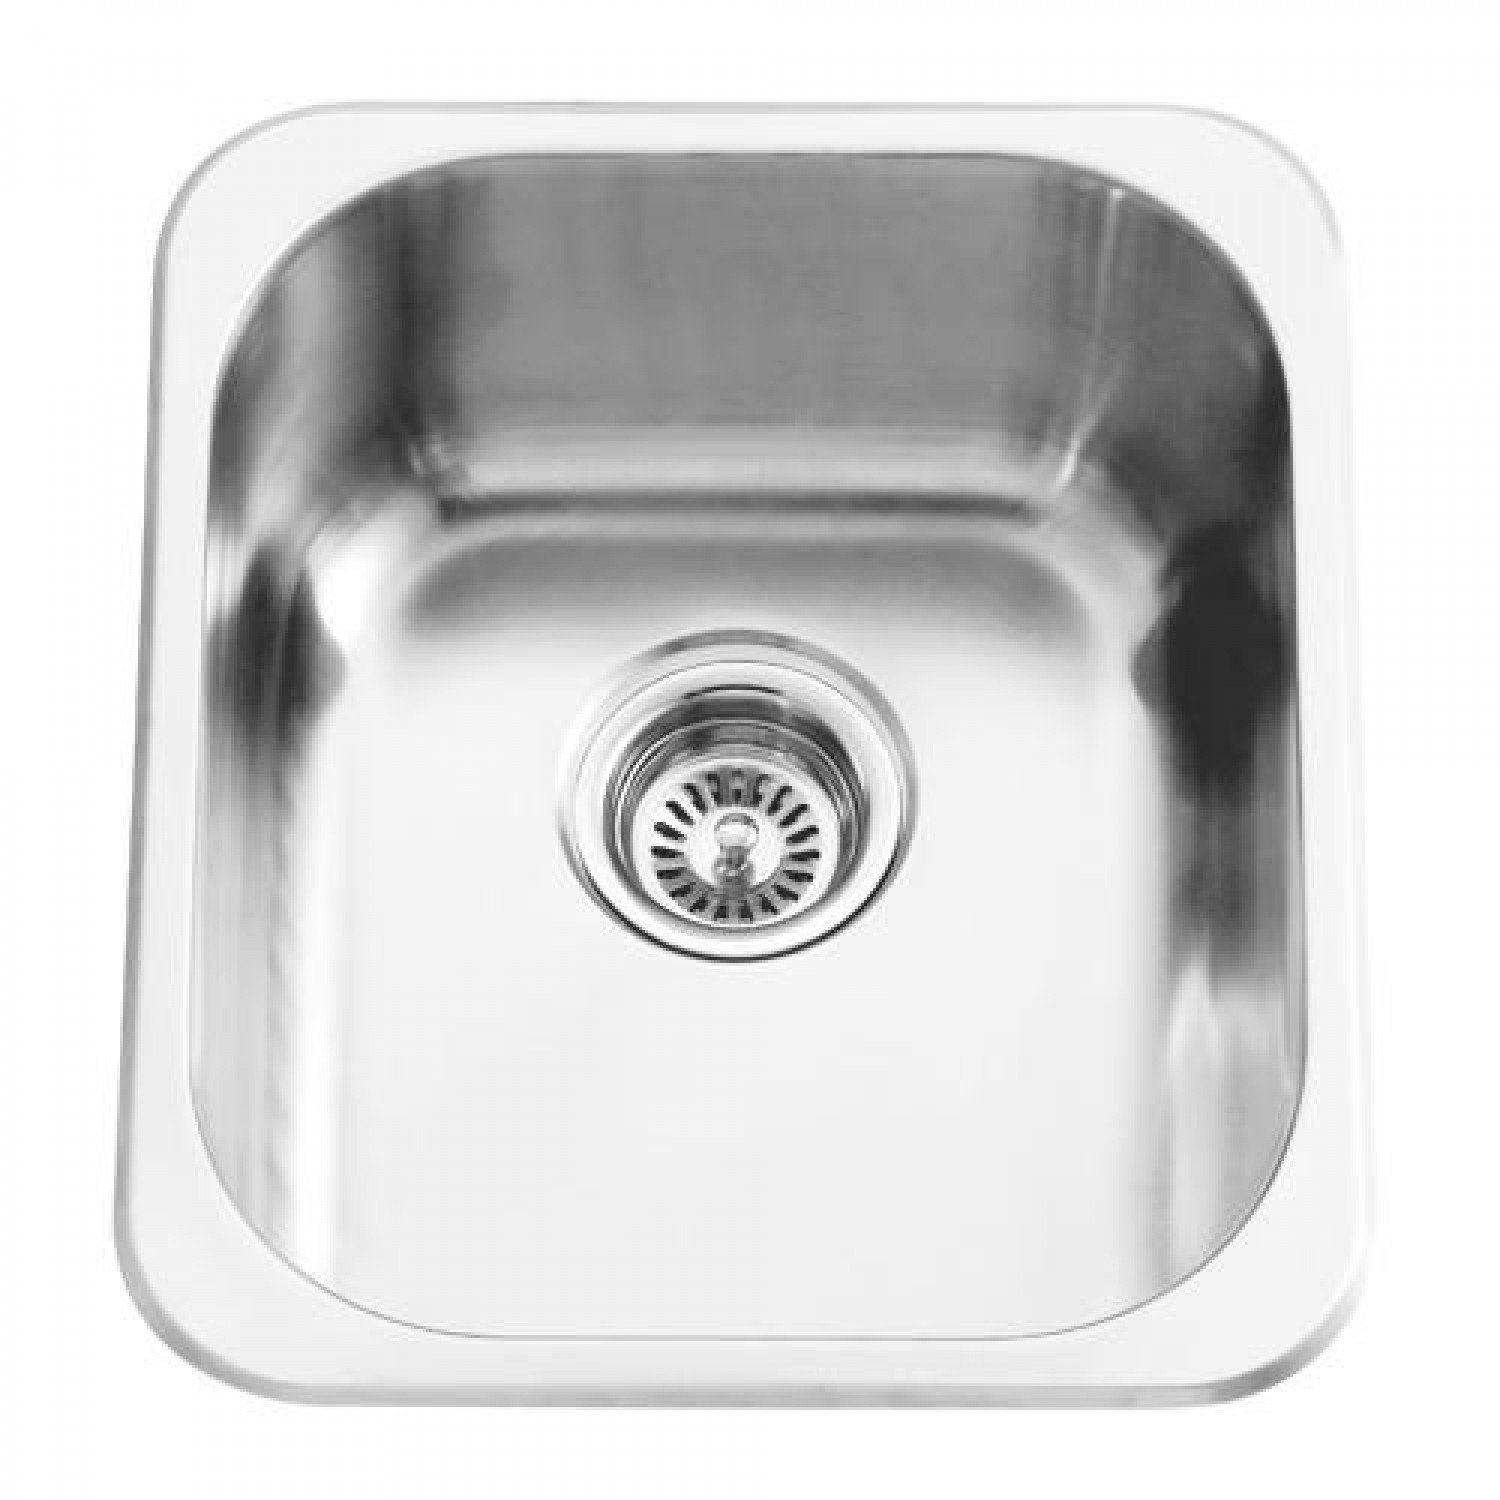 Naiture Stainless Steel Drop-in Bar Kitchen Sink-12-1/2''L X 14-1/2W X 6''H by SH